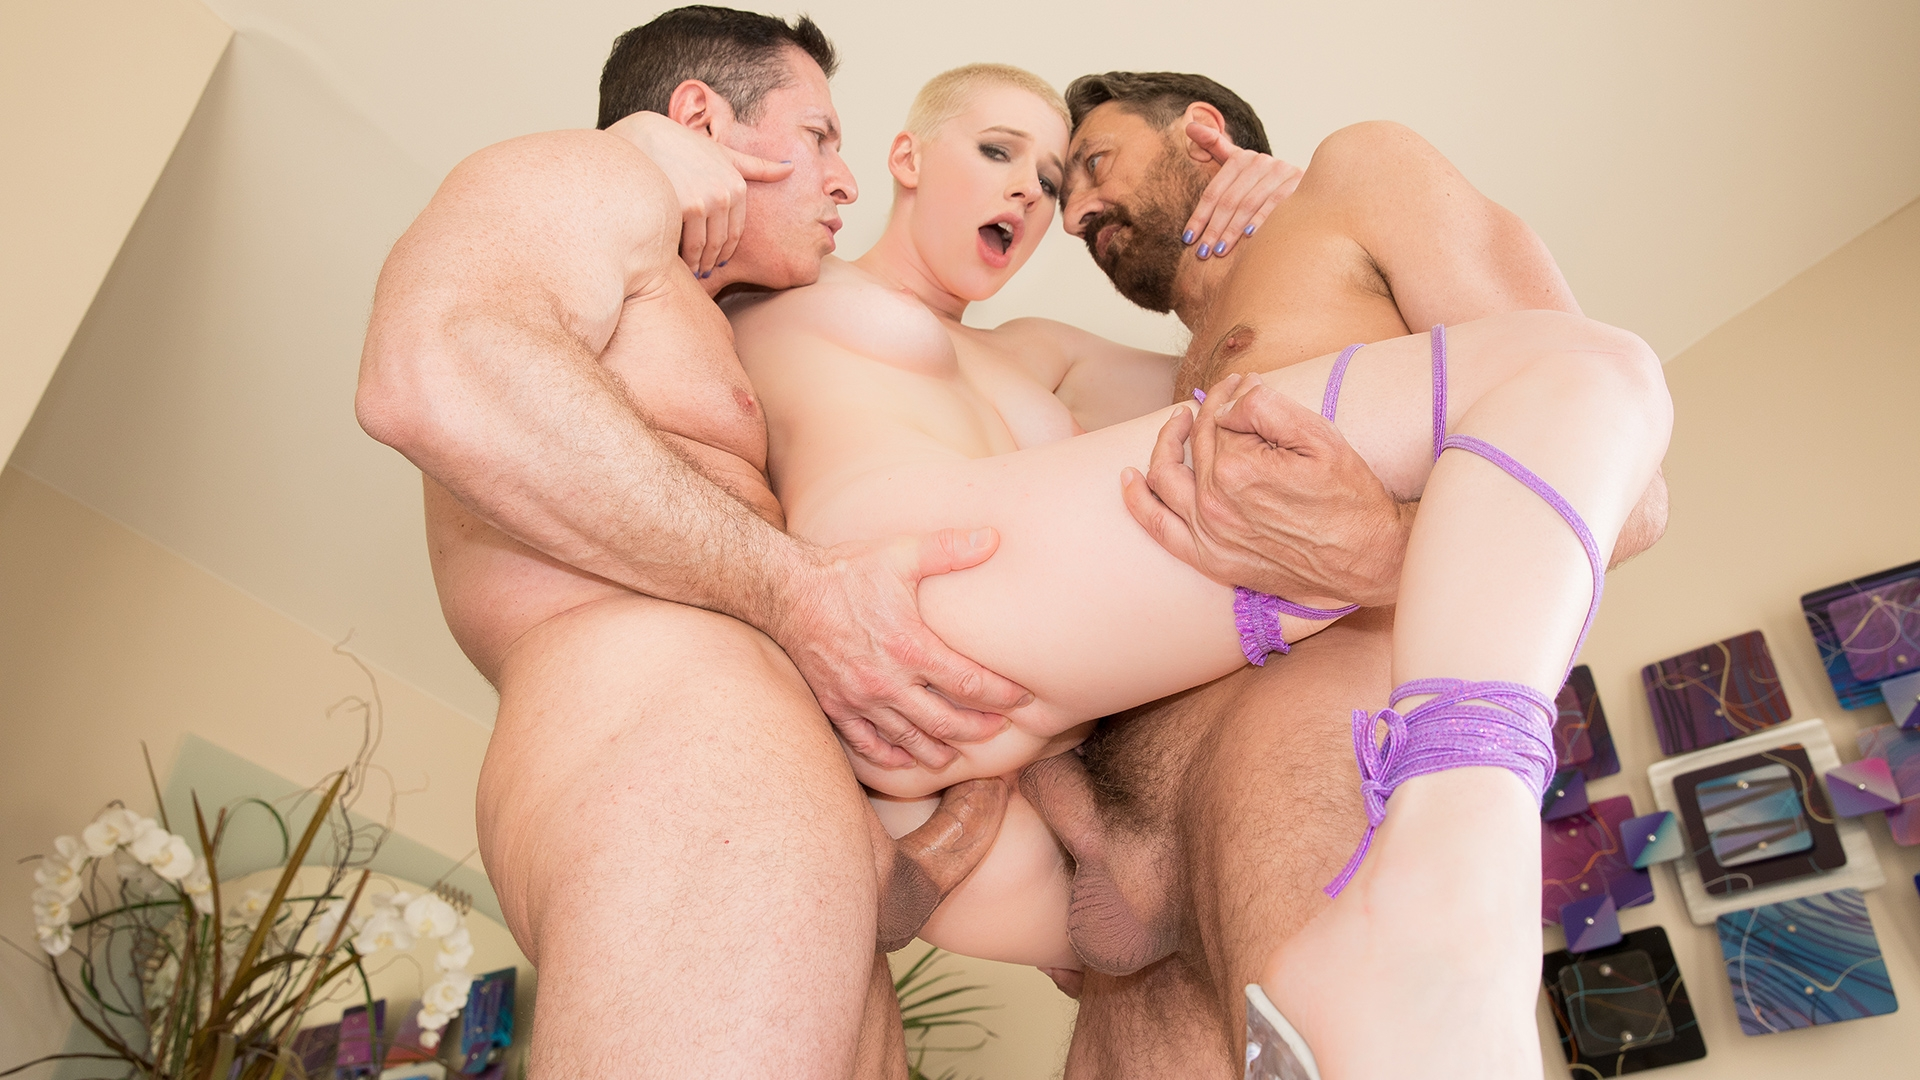 Riley Nixon in Riley Nixon Is Double Teamed & Double Stuffed For Her FIRST DP